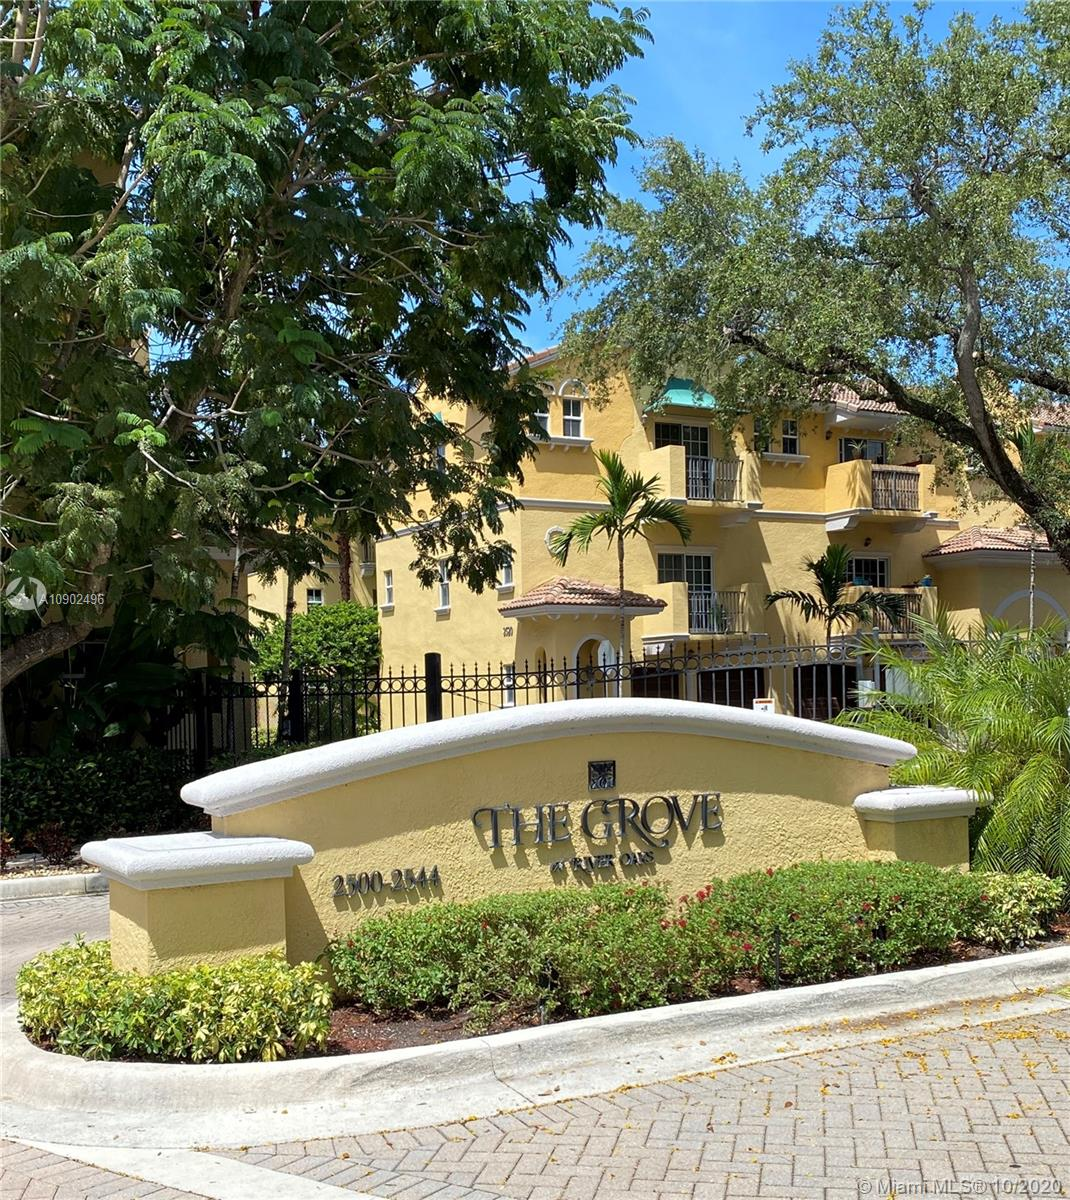 This charming 2Bed/2.5bath multi level town home with a two car garage is located in sought out community The Grove at River oaks. This town home is all about location location location, which is minutes from Downton, Las Olas, Ft. Lauderdale Beach, airport, port everglades, and Hard Rock Hotel and Casino. With fast access to multiple highways makes it easy to commute any where you would like to go. This town home is a perfect starter home or rental investment.